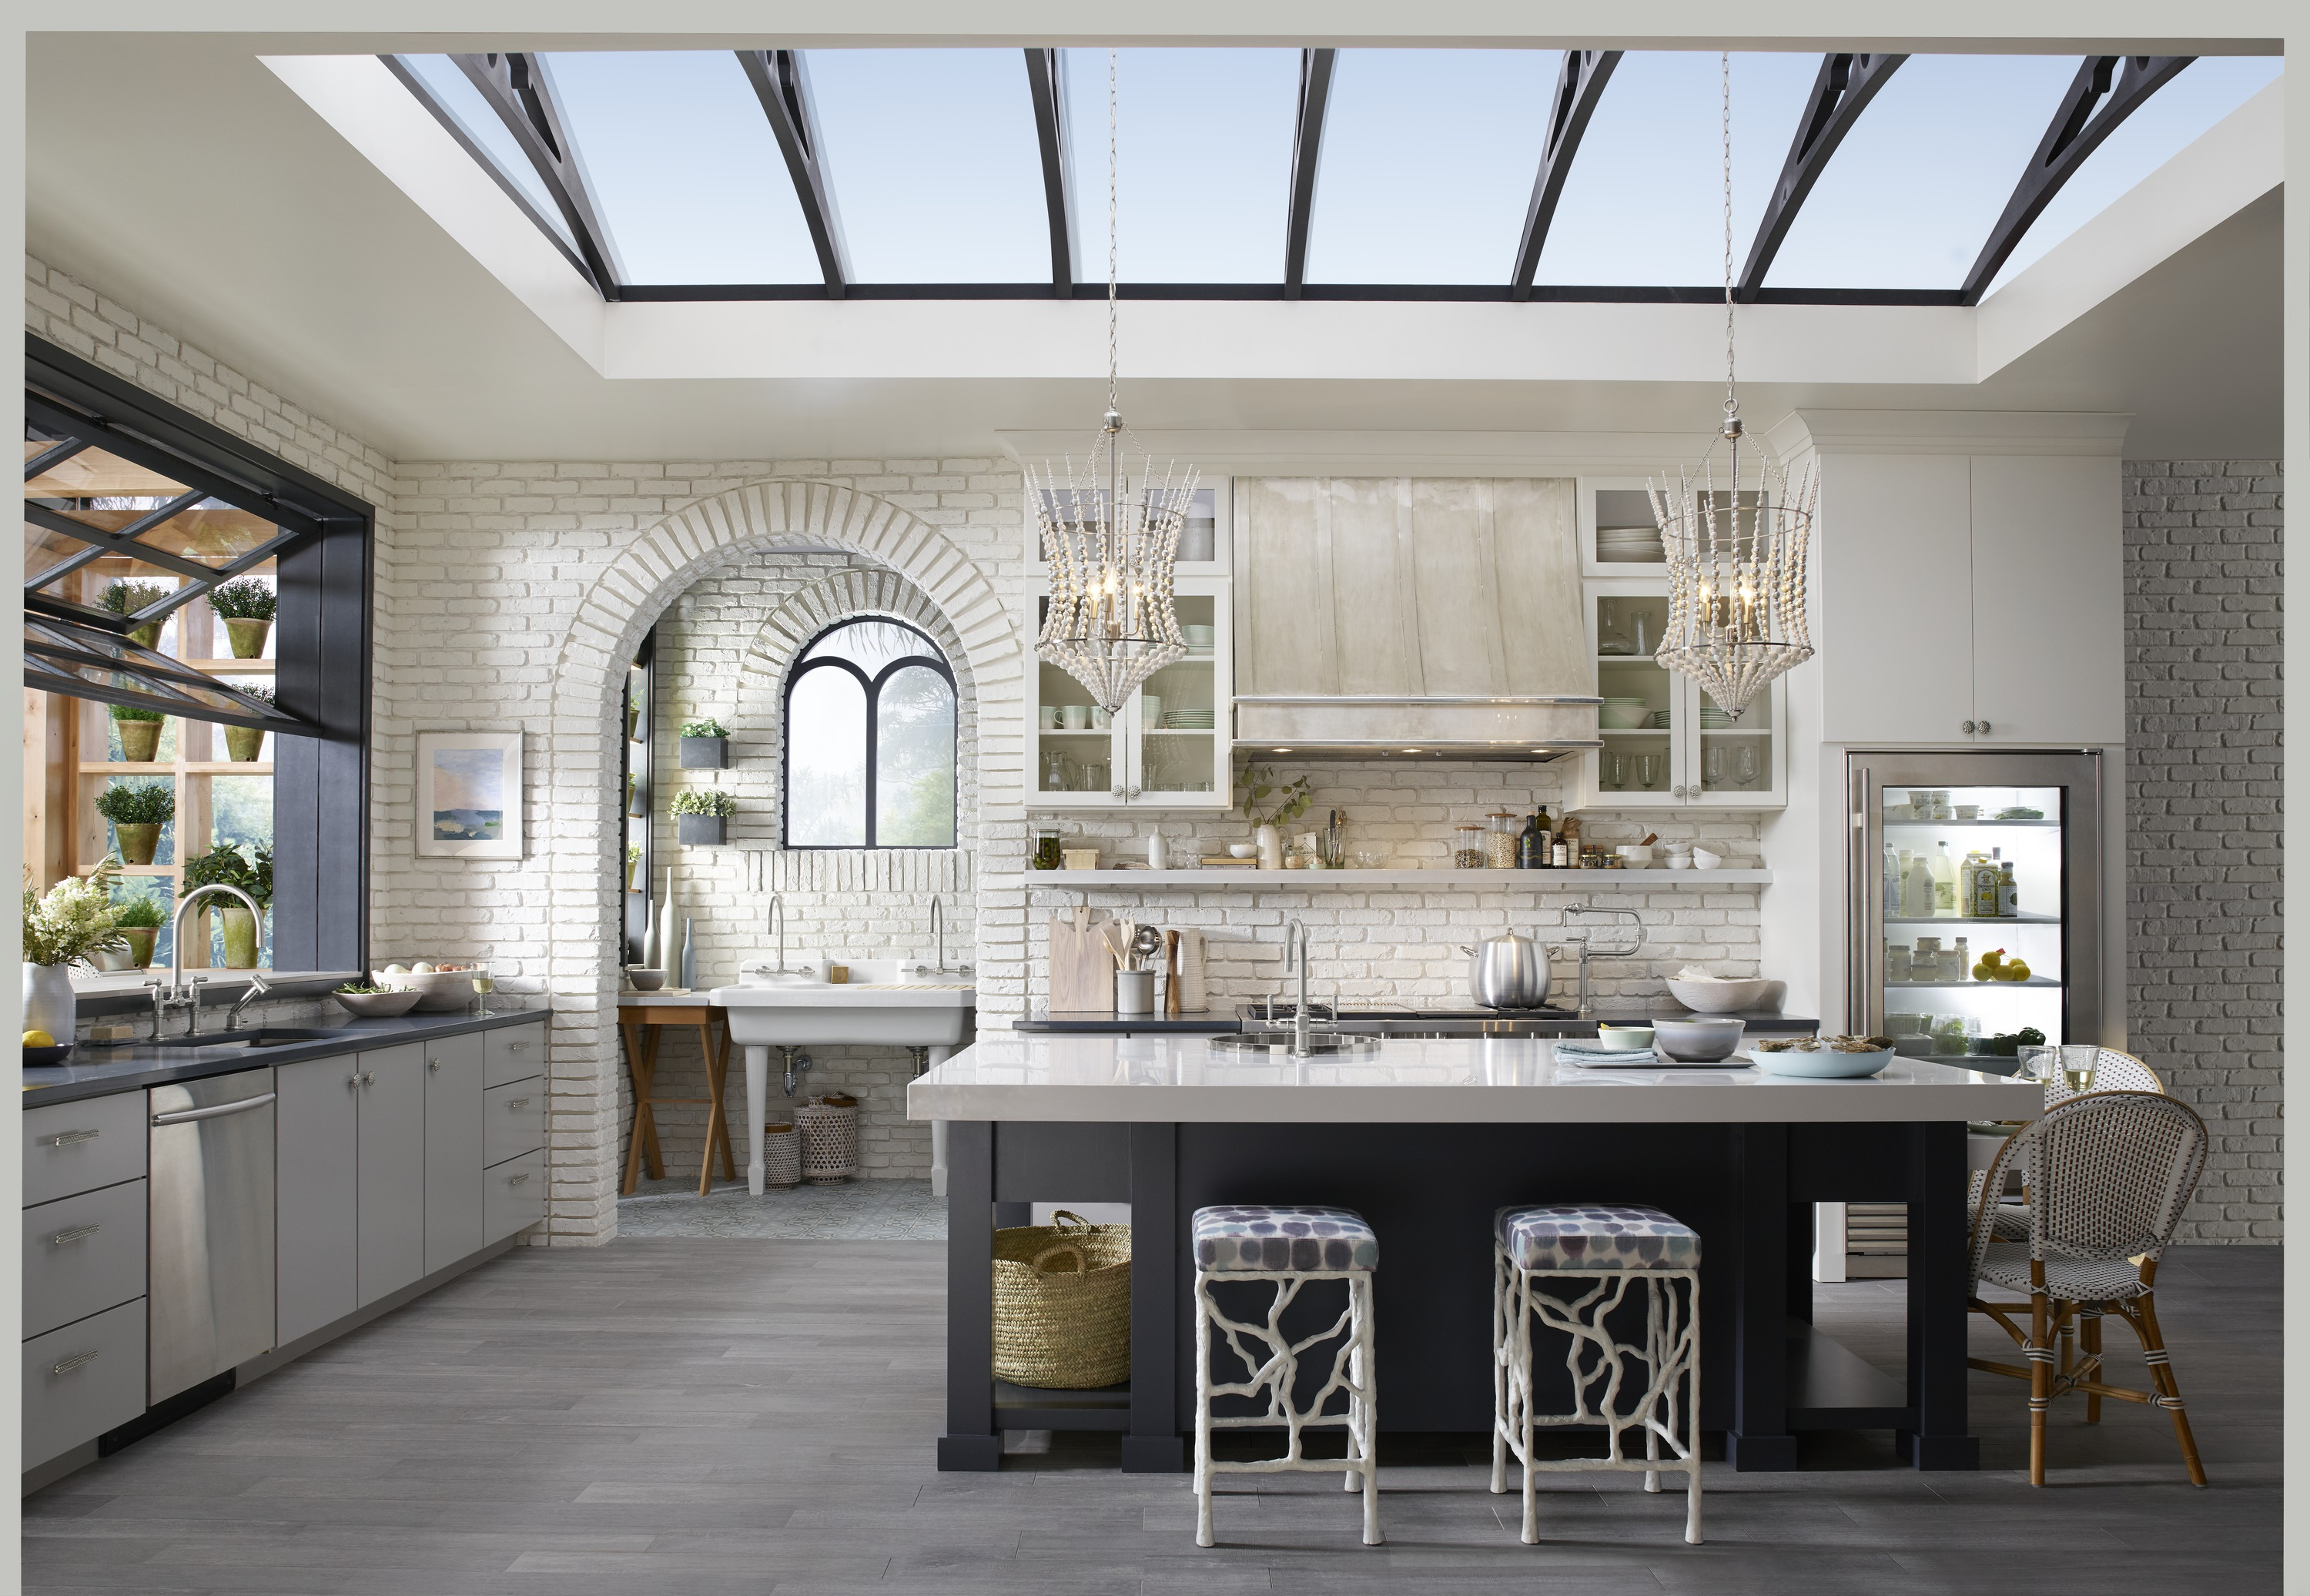 Light In The Kitchen A light filled kitchen traditional home this kitchen covers all the bases of function with zones for prepping cooking grilling and gatheringinside and out and it does it all in style workwithnaturefo